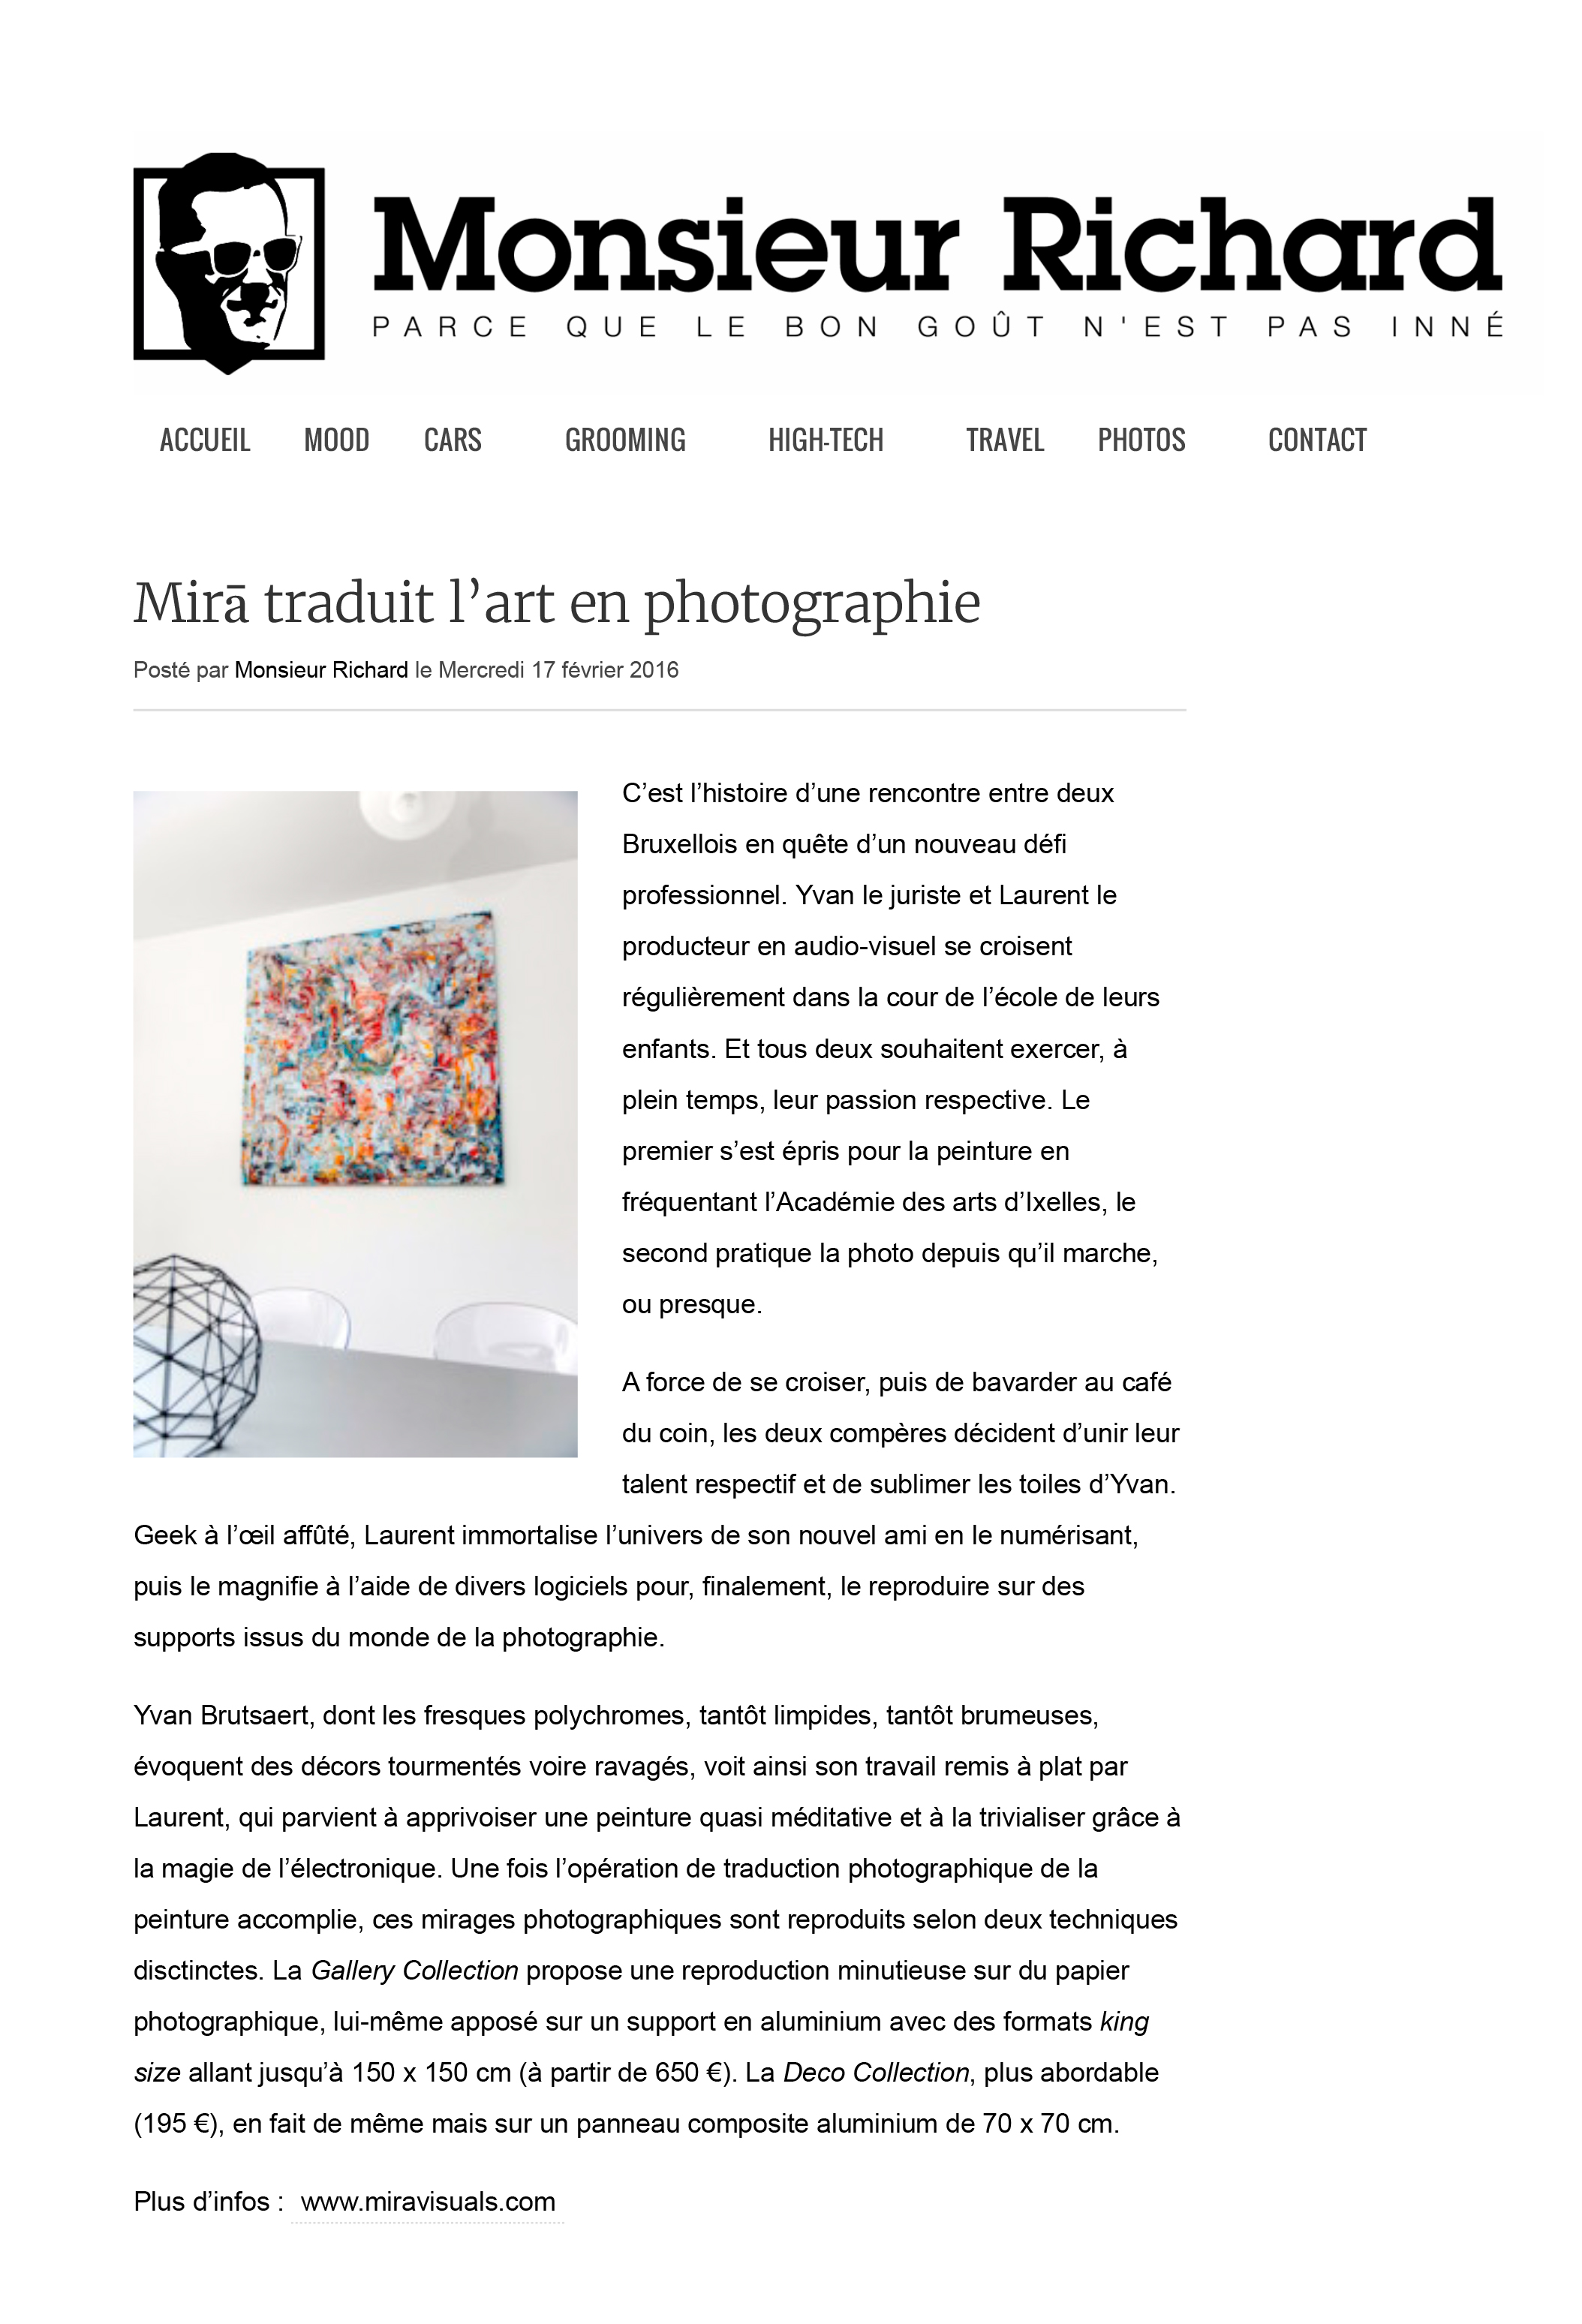 la traduction de l'art en photographie-1.jpg